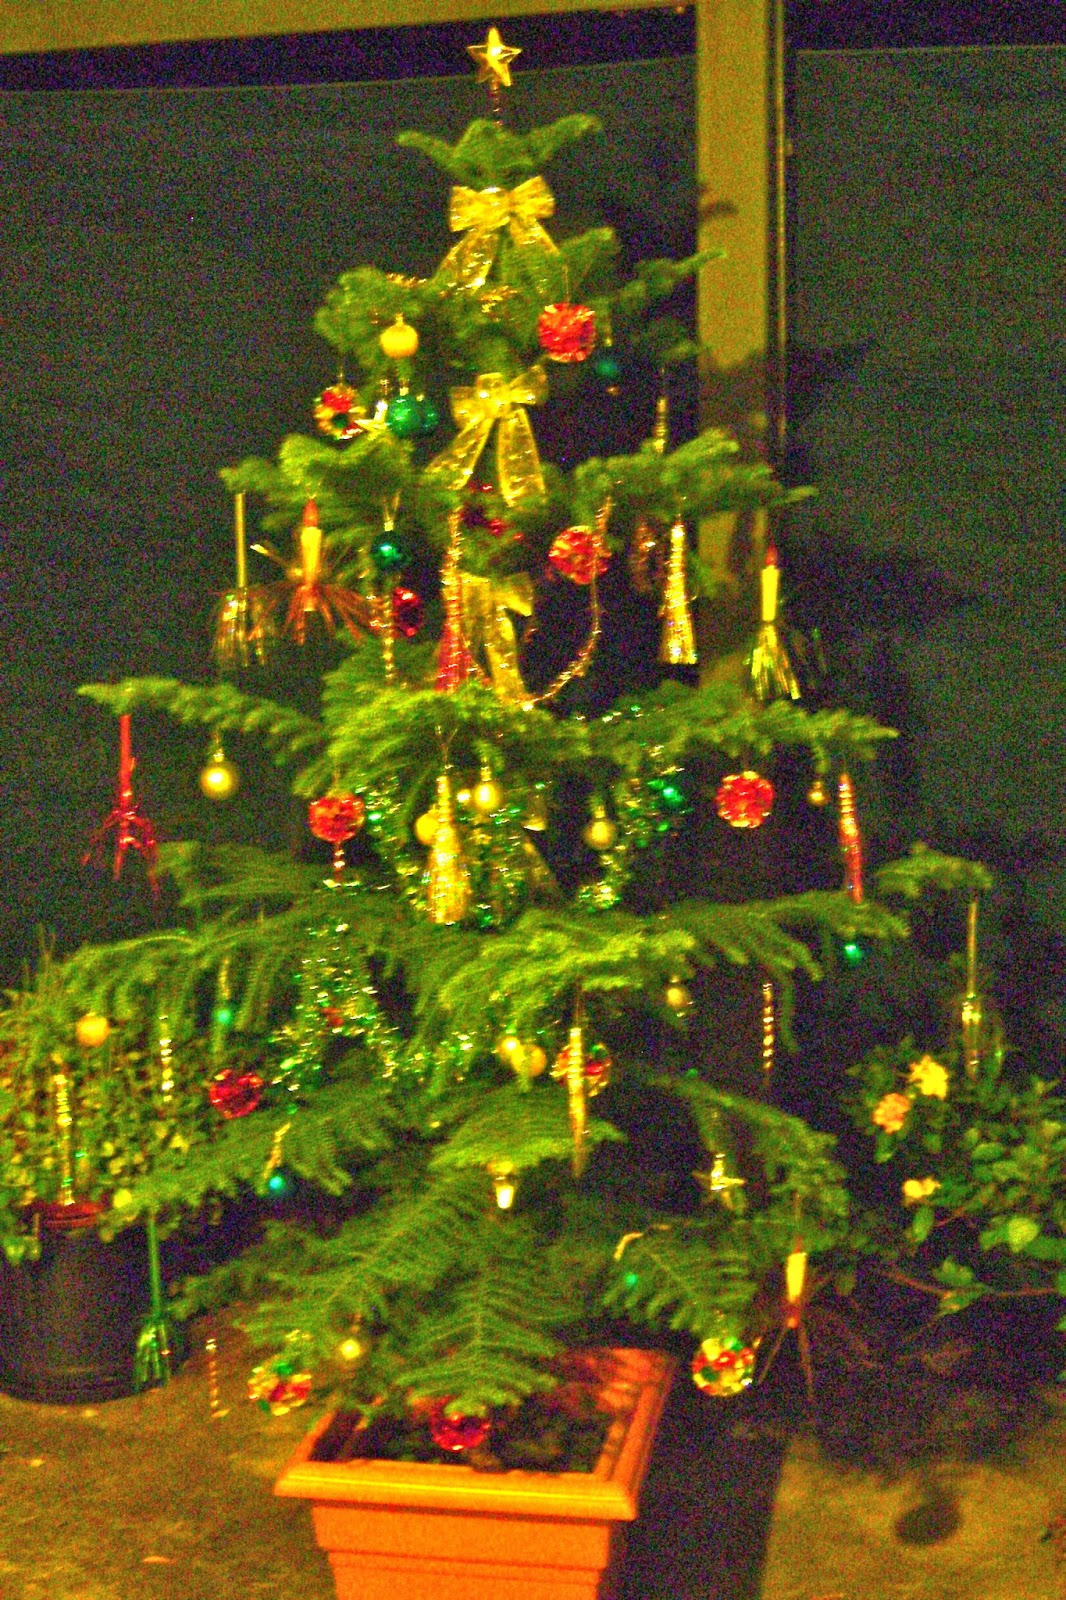 A geriatric grandmother: OUR CHRISTMAS TREE.....AT LAST